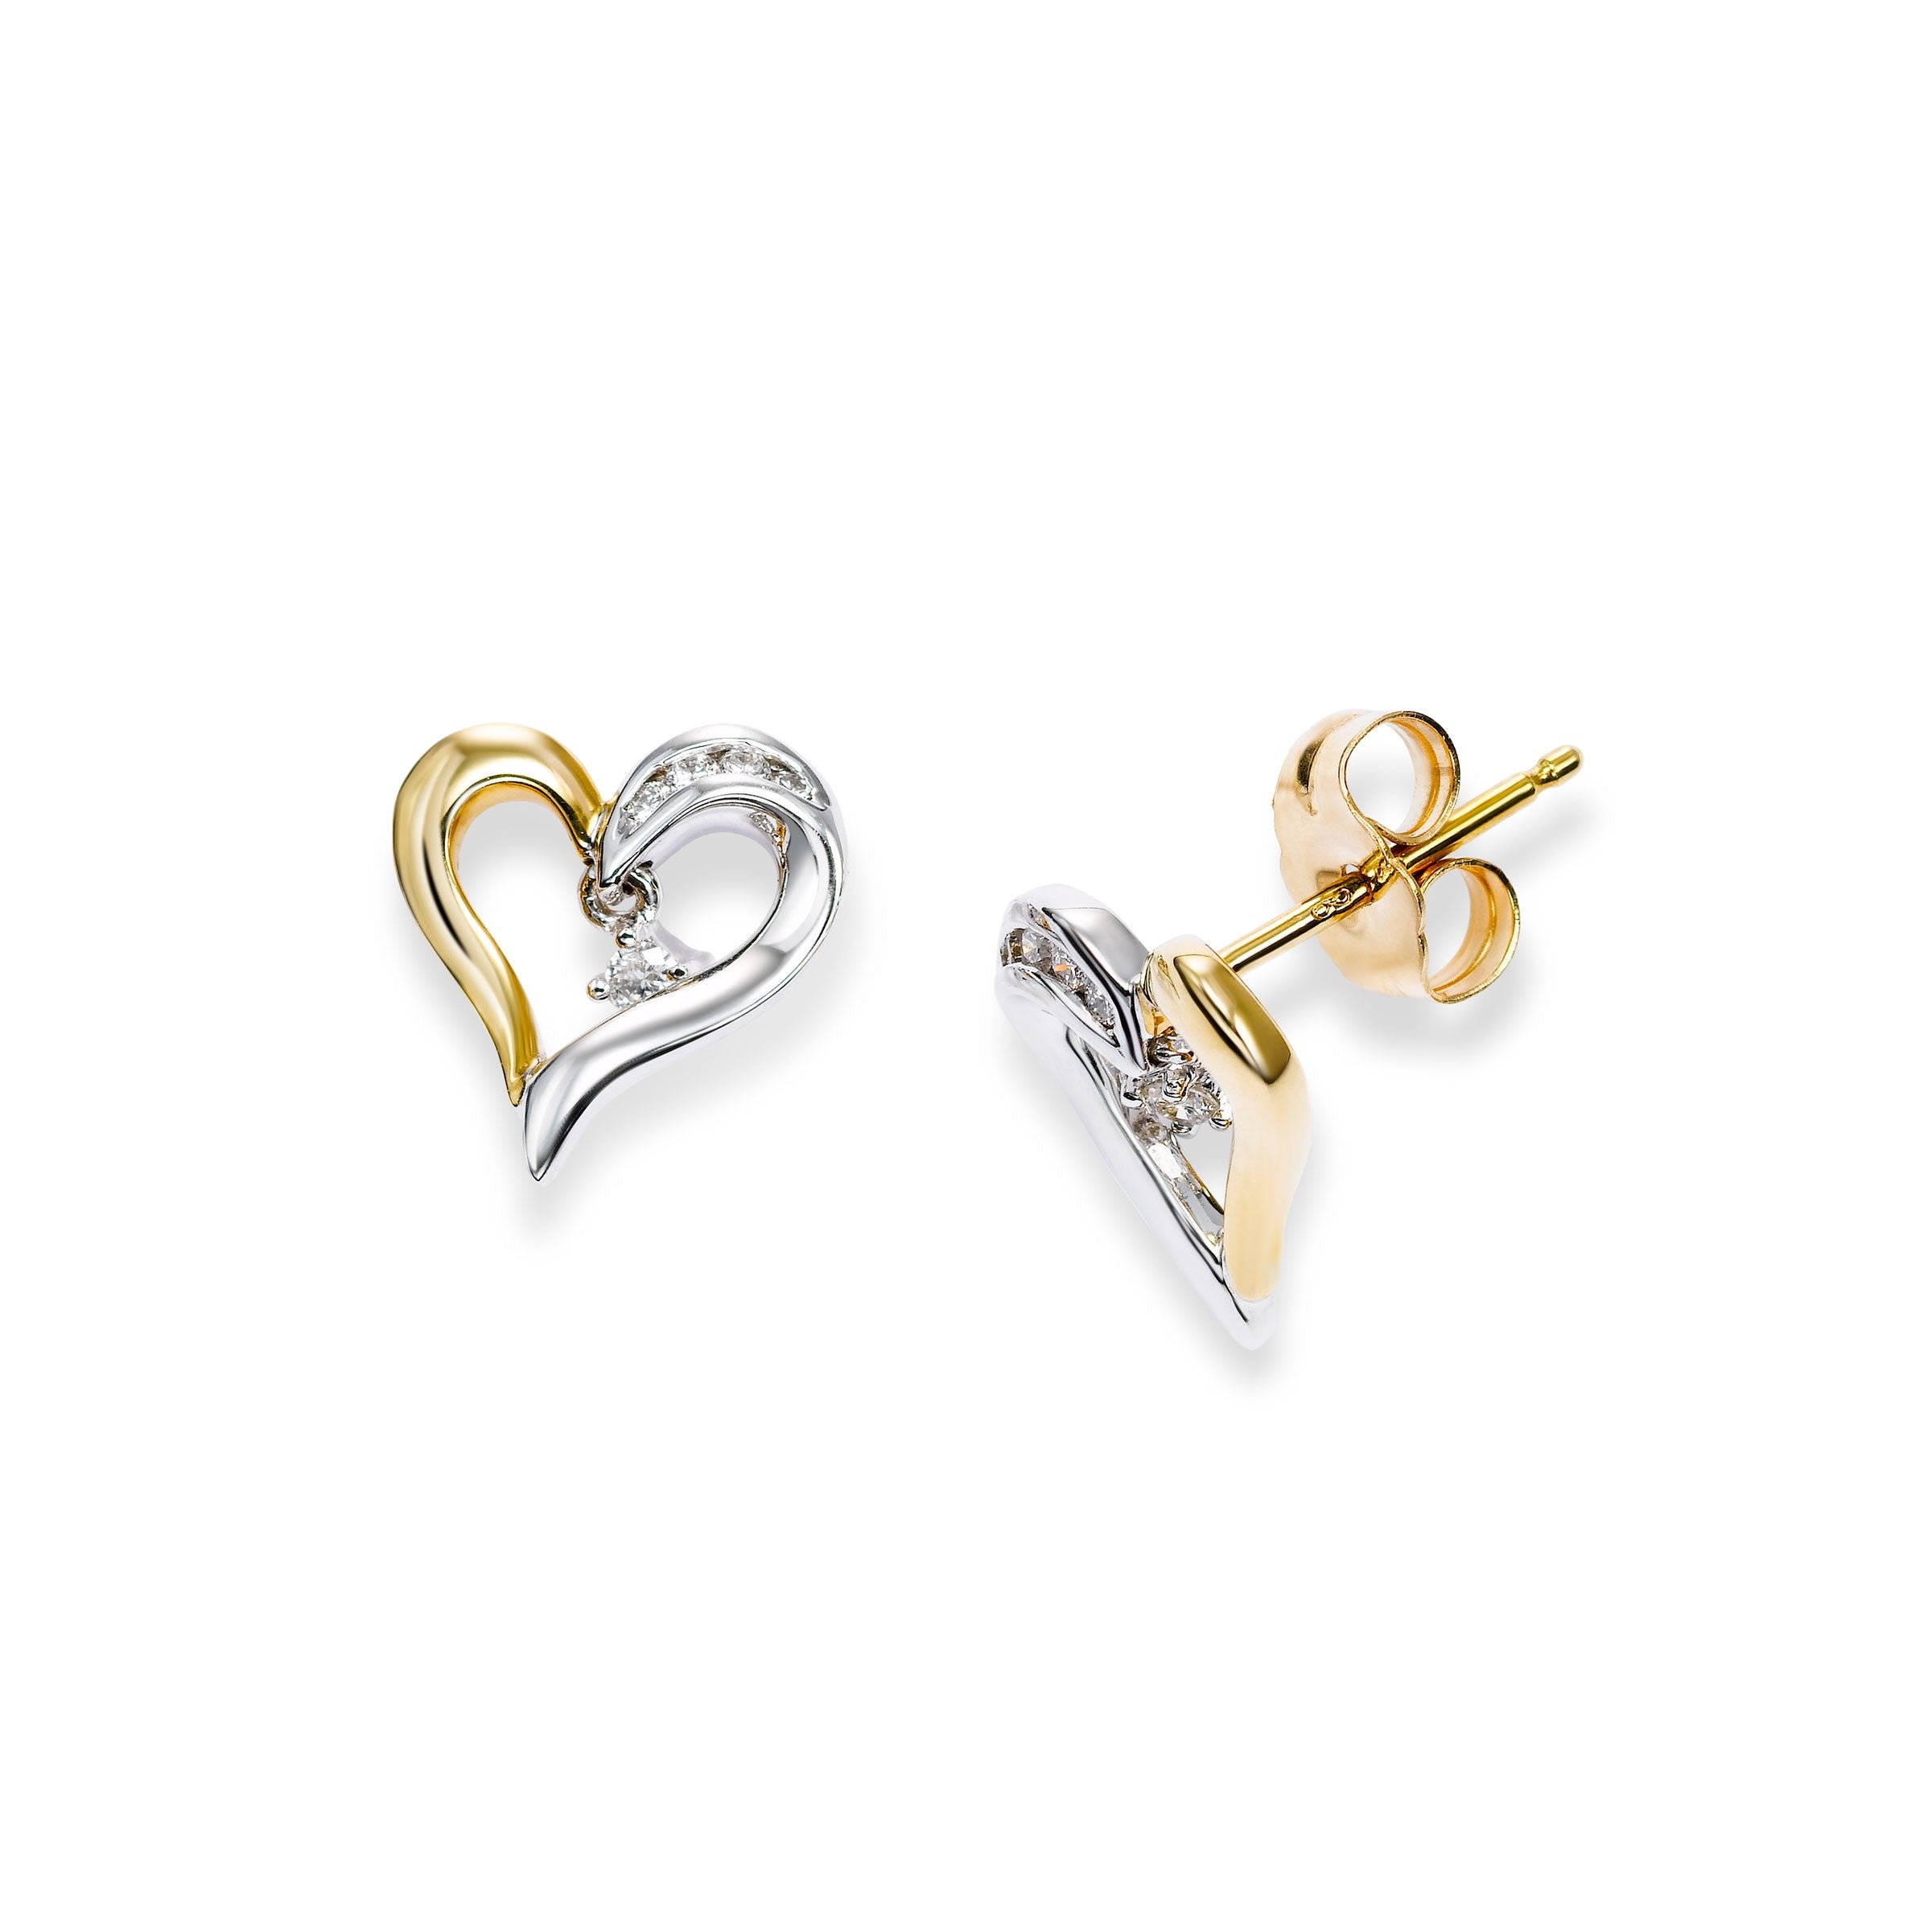 Two Tone Diamond Heart Earrings, 14 Karat Gold